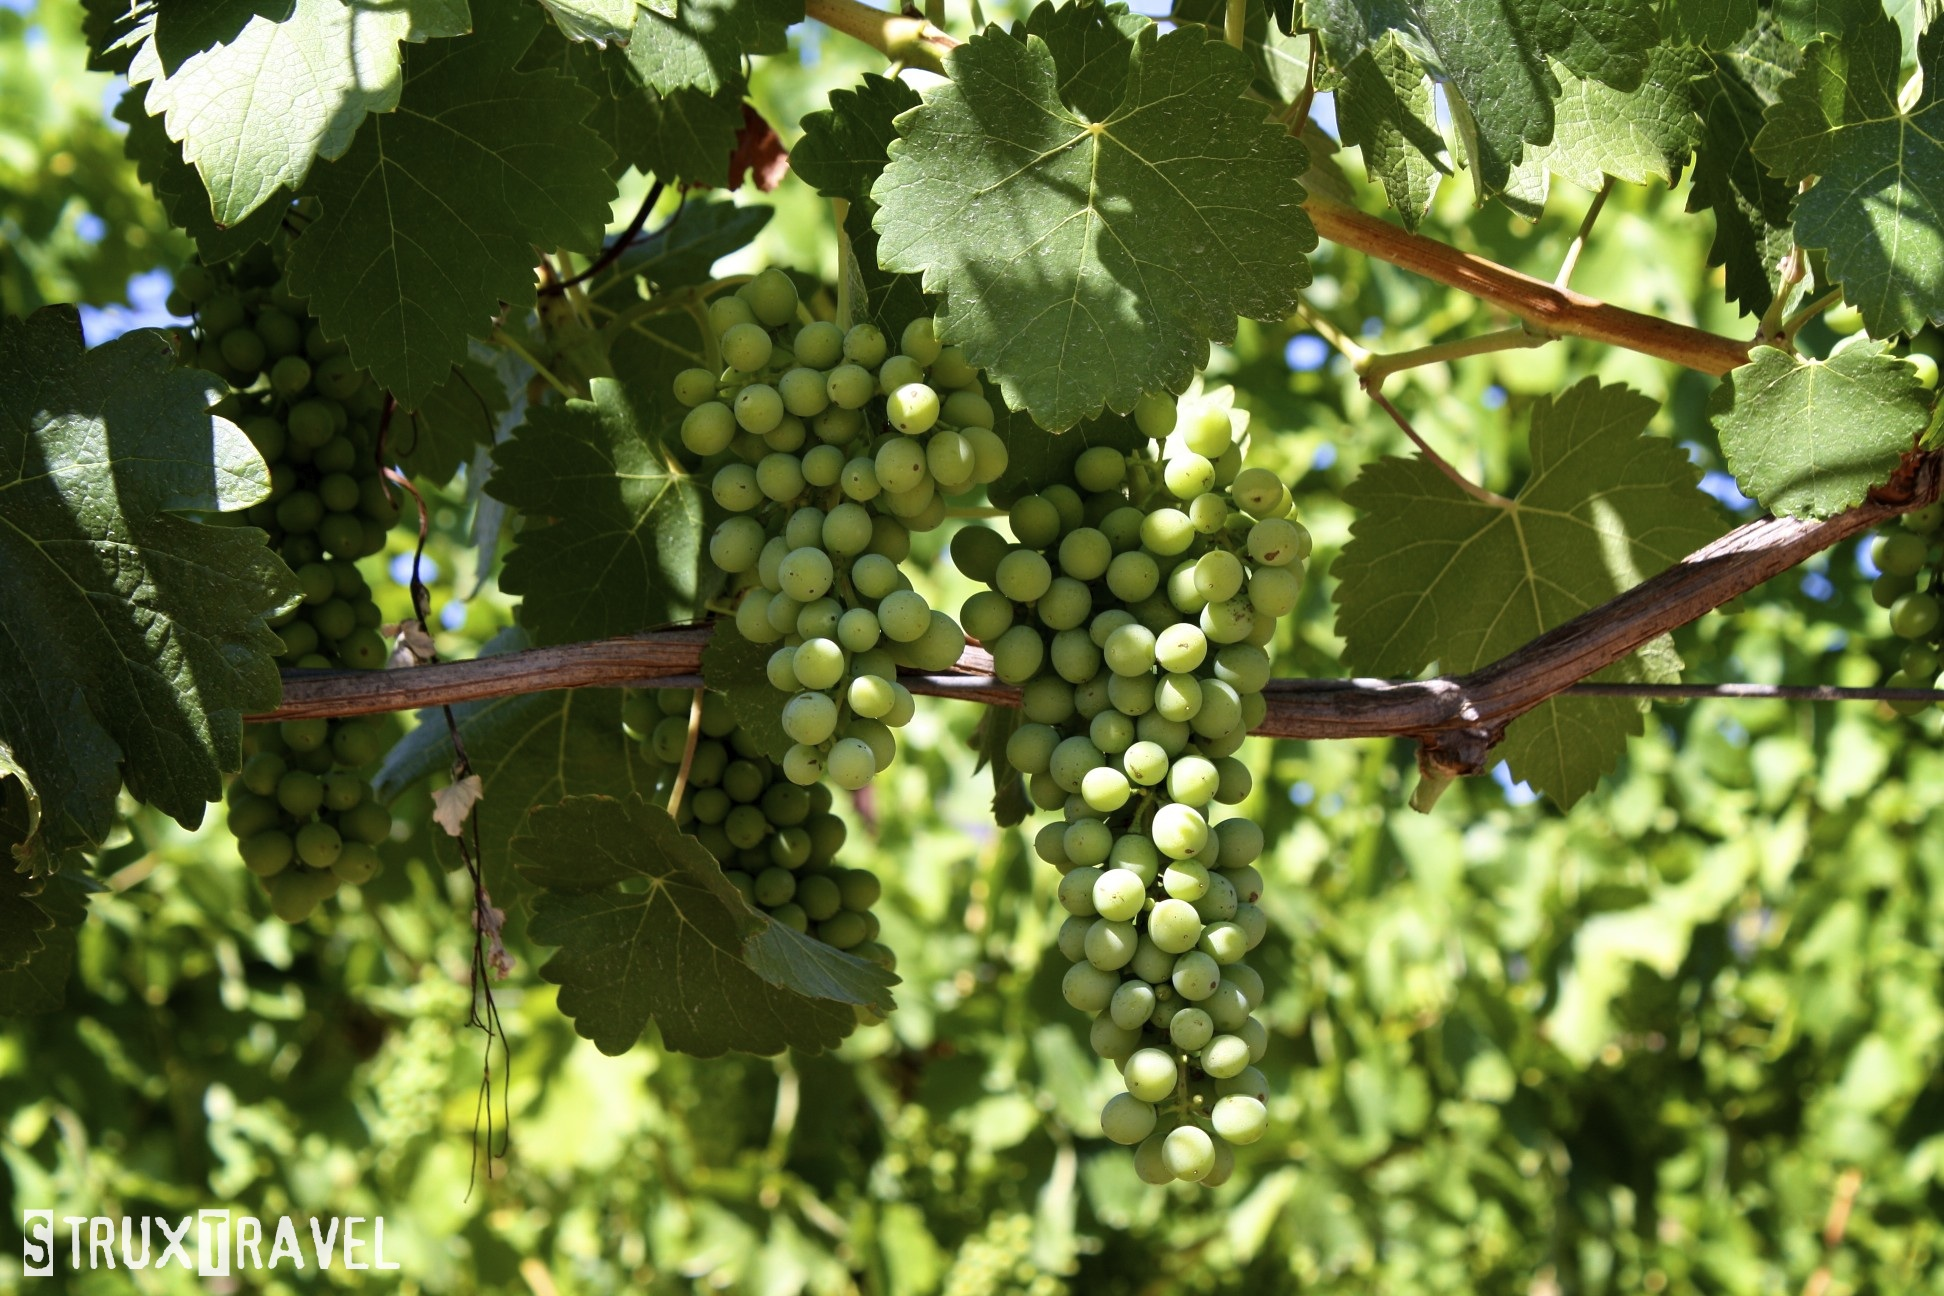 how to cut grapes off the vine